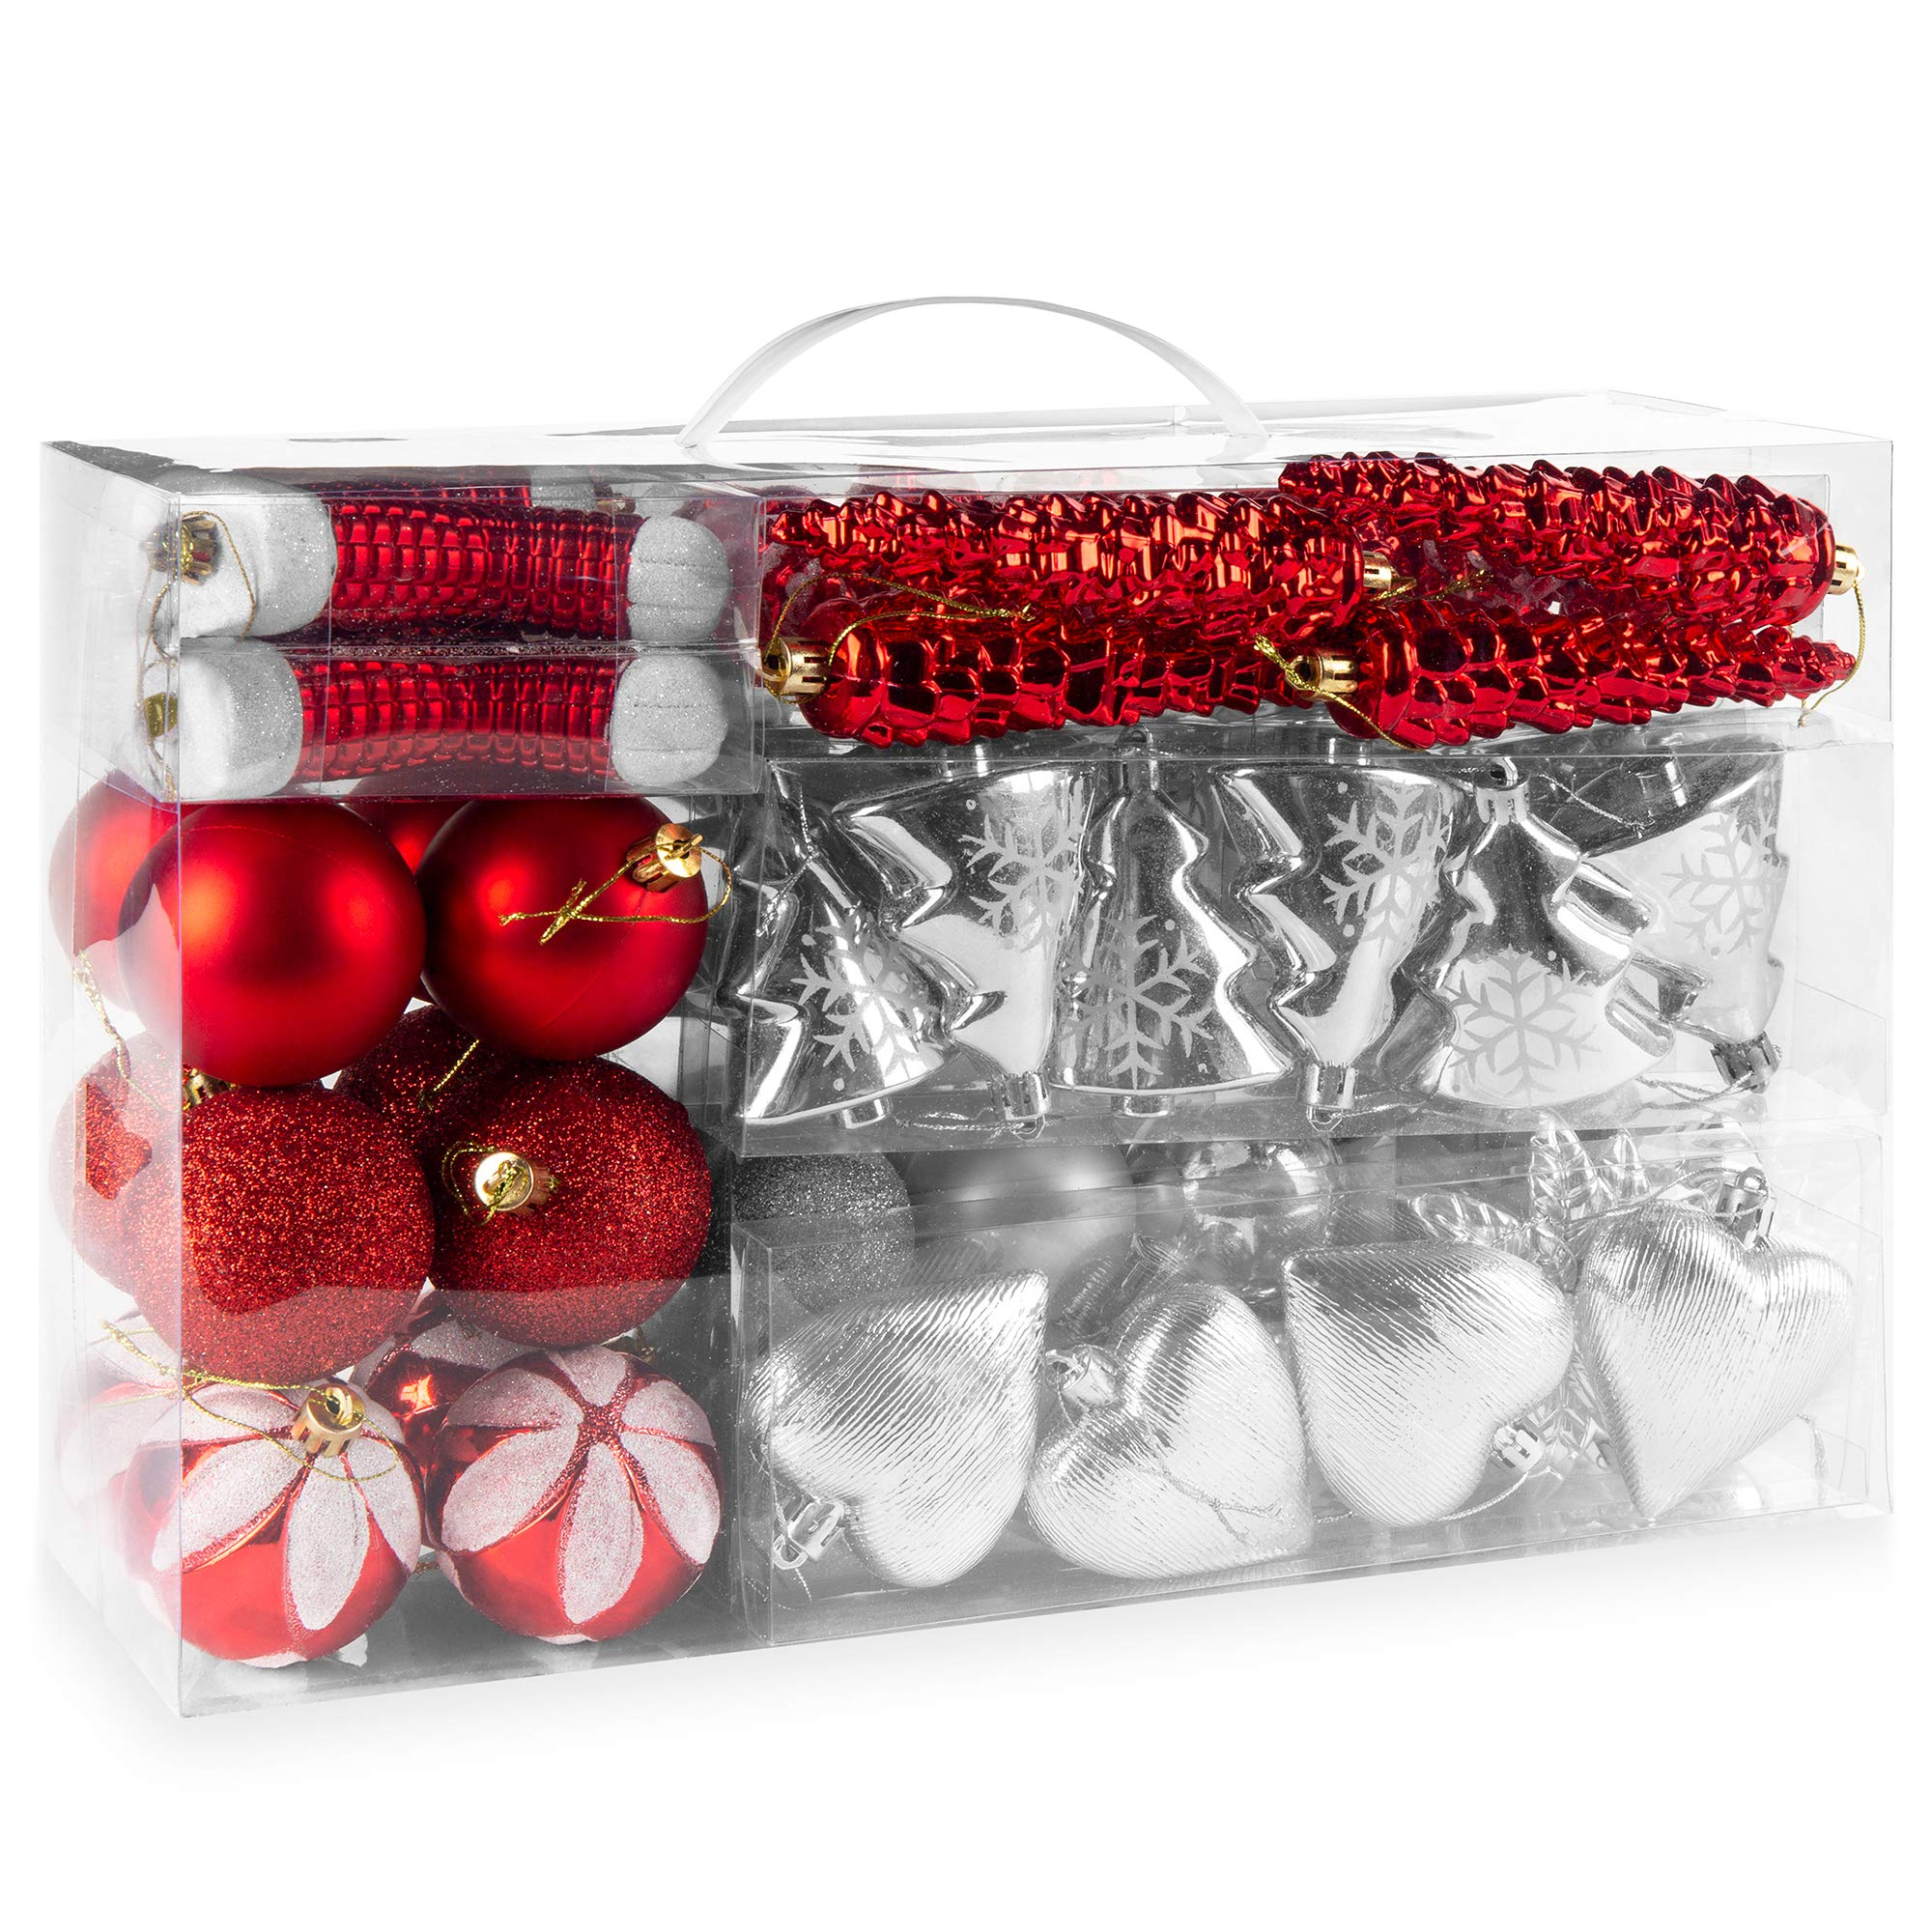 Amazon Com Best Choice Products Set Of 72 Shatterproof Handcrafted Assorted Hanging Christmas Ornaments W Embossed Glitter Design Red Silver Furniture Decor